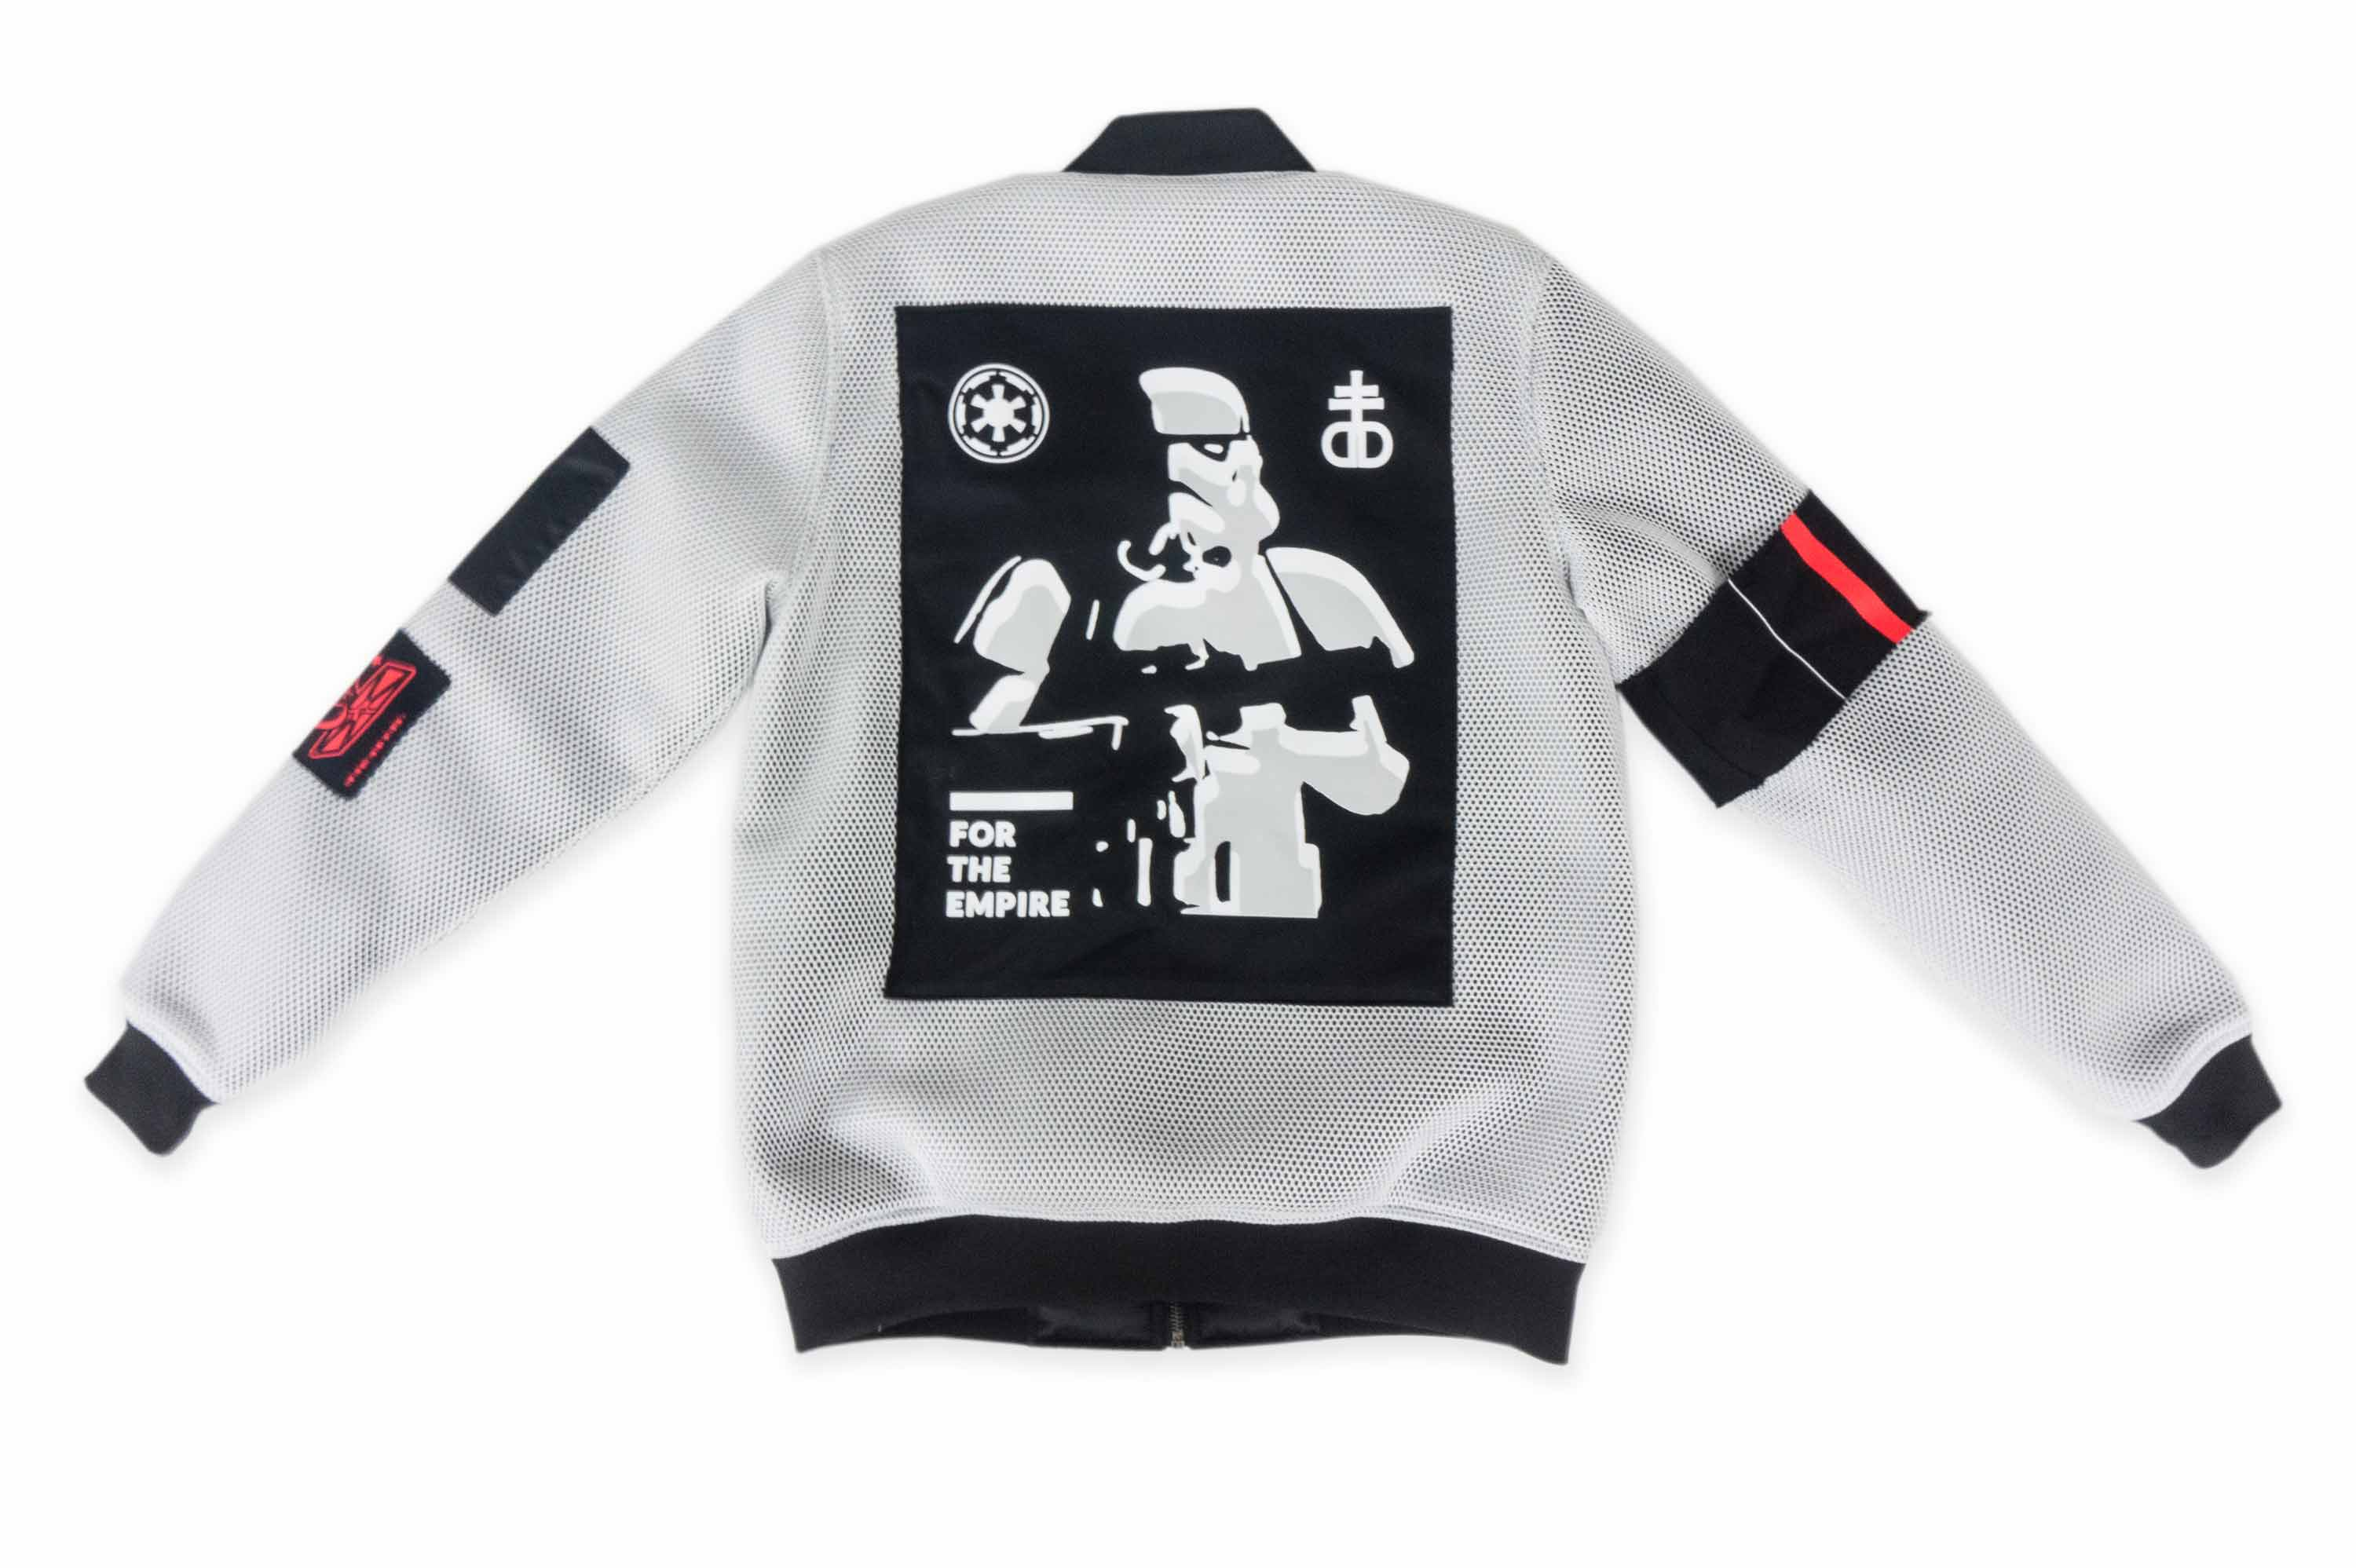 Rogue One jackets by Drop Dead